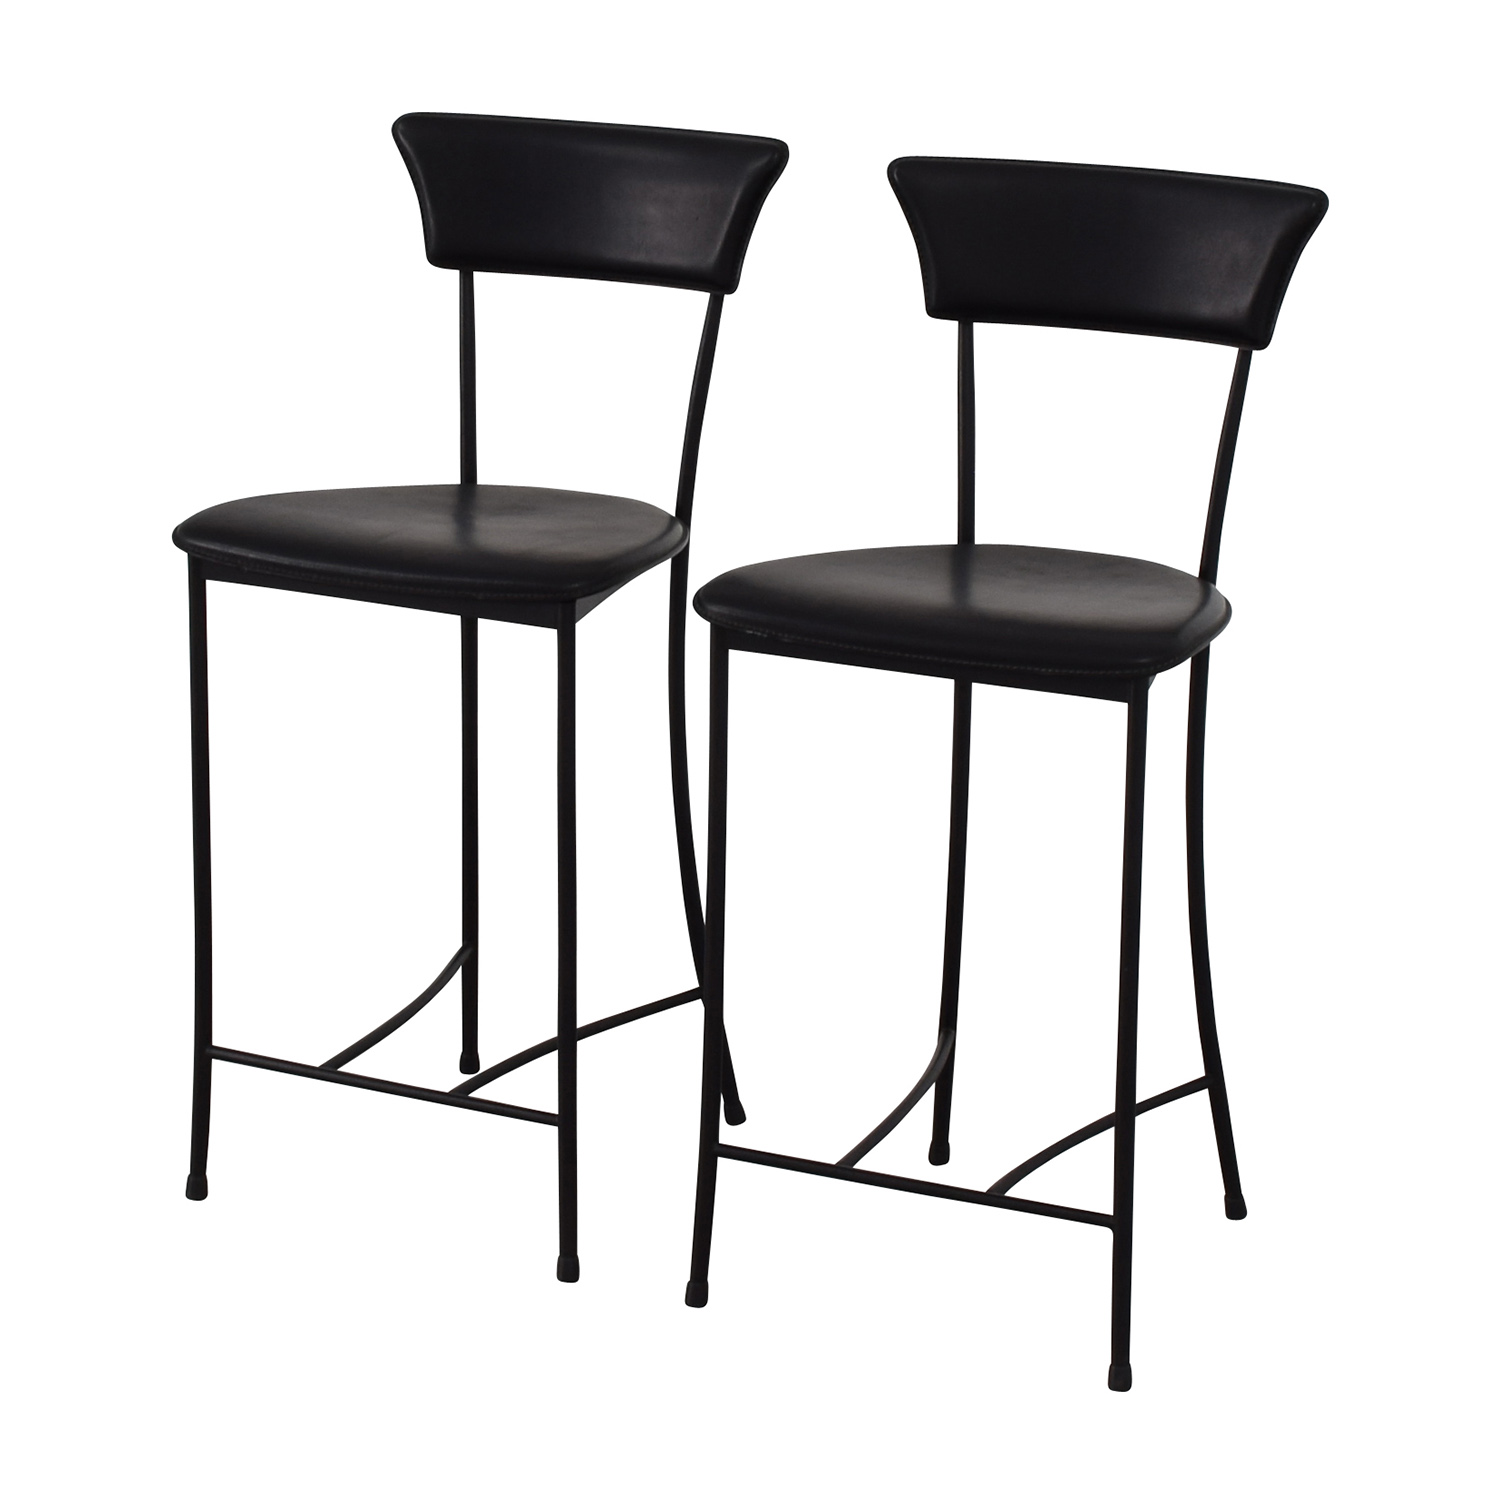 Black Leatherette Counter Height Chairs nj